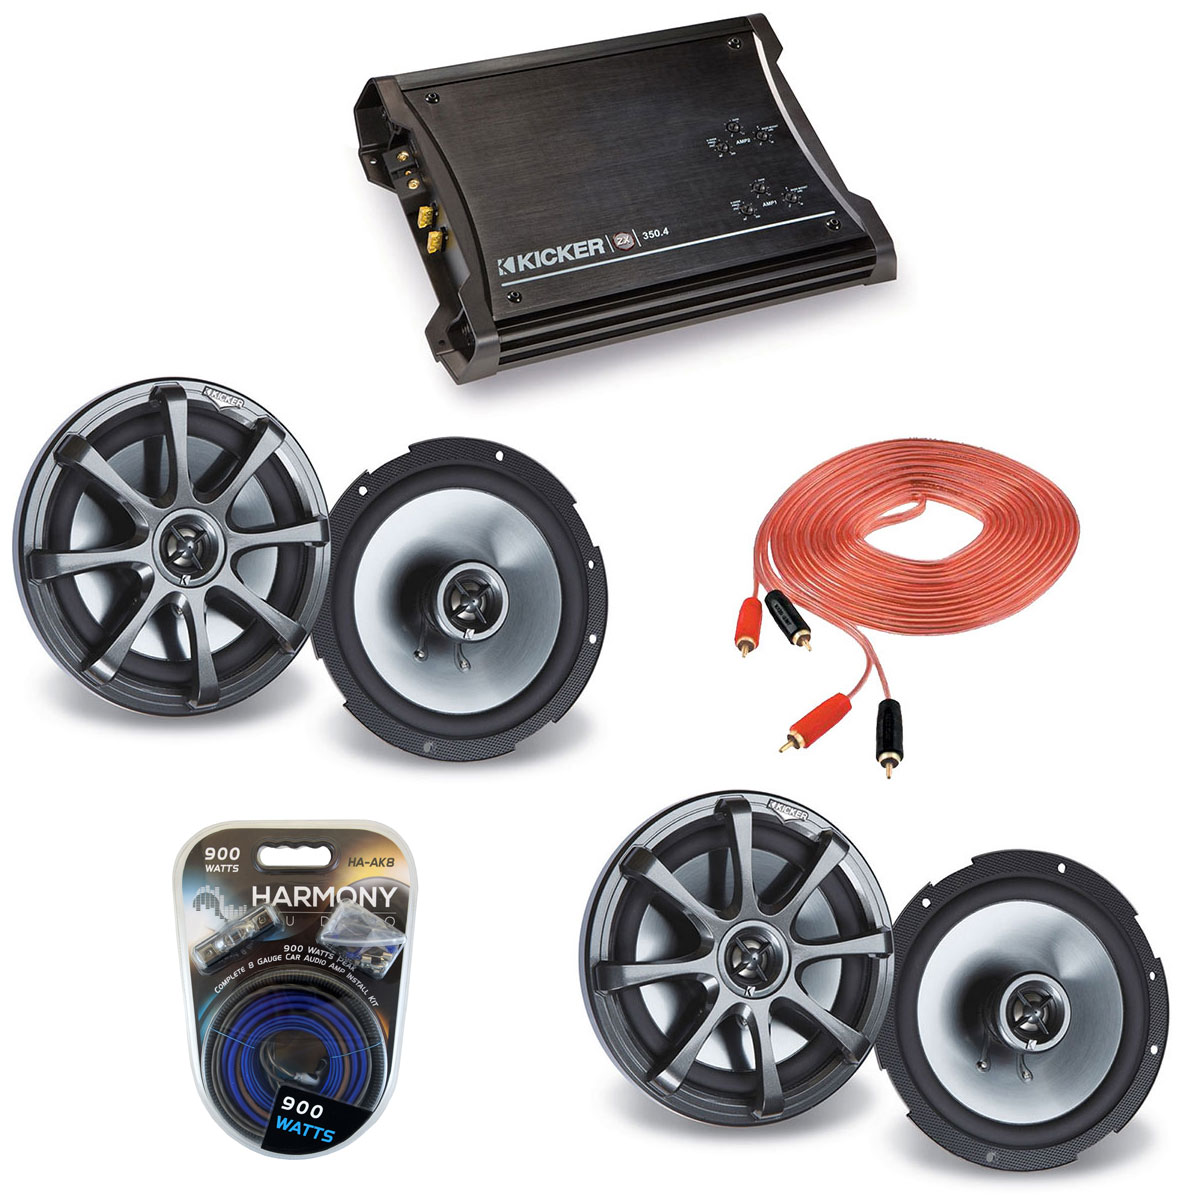 "Kicker Car Audio (2) KS650 Full Range 6.5"" Speaker Pairs with ZX350.4 Amplifier & 8GA Amp Kit"